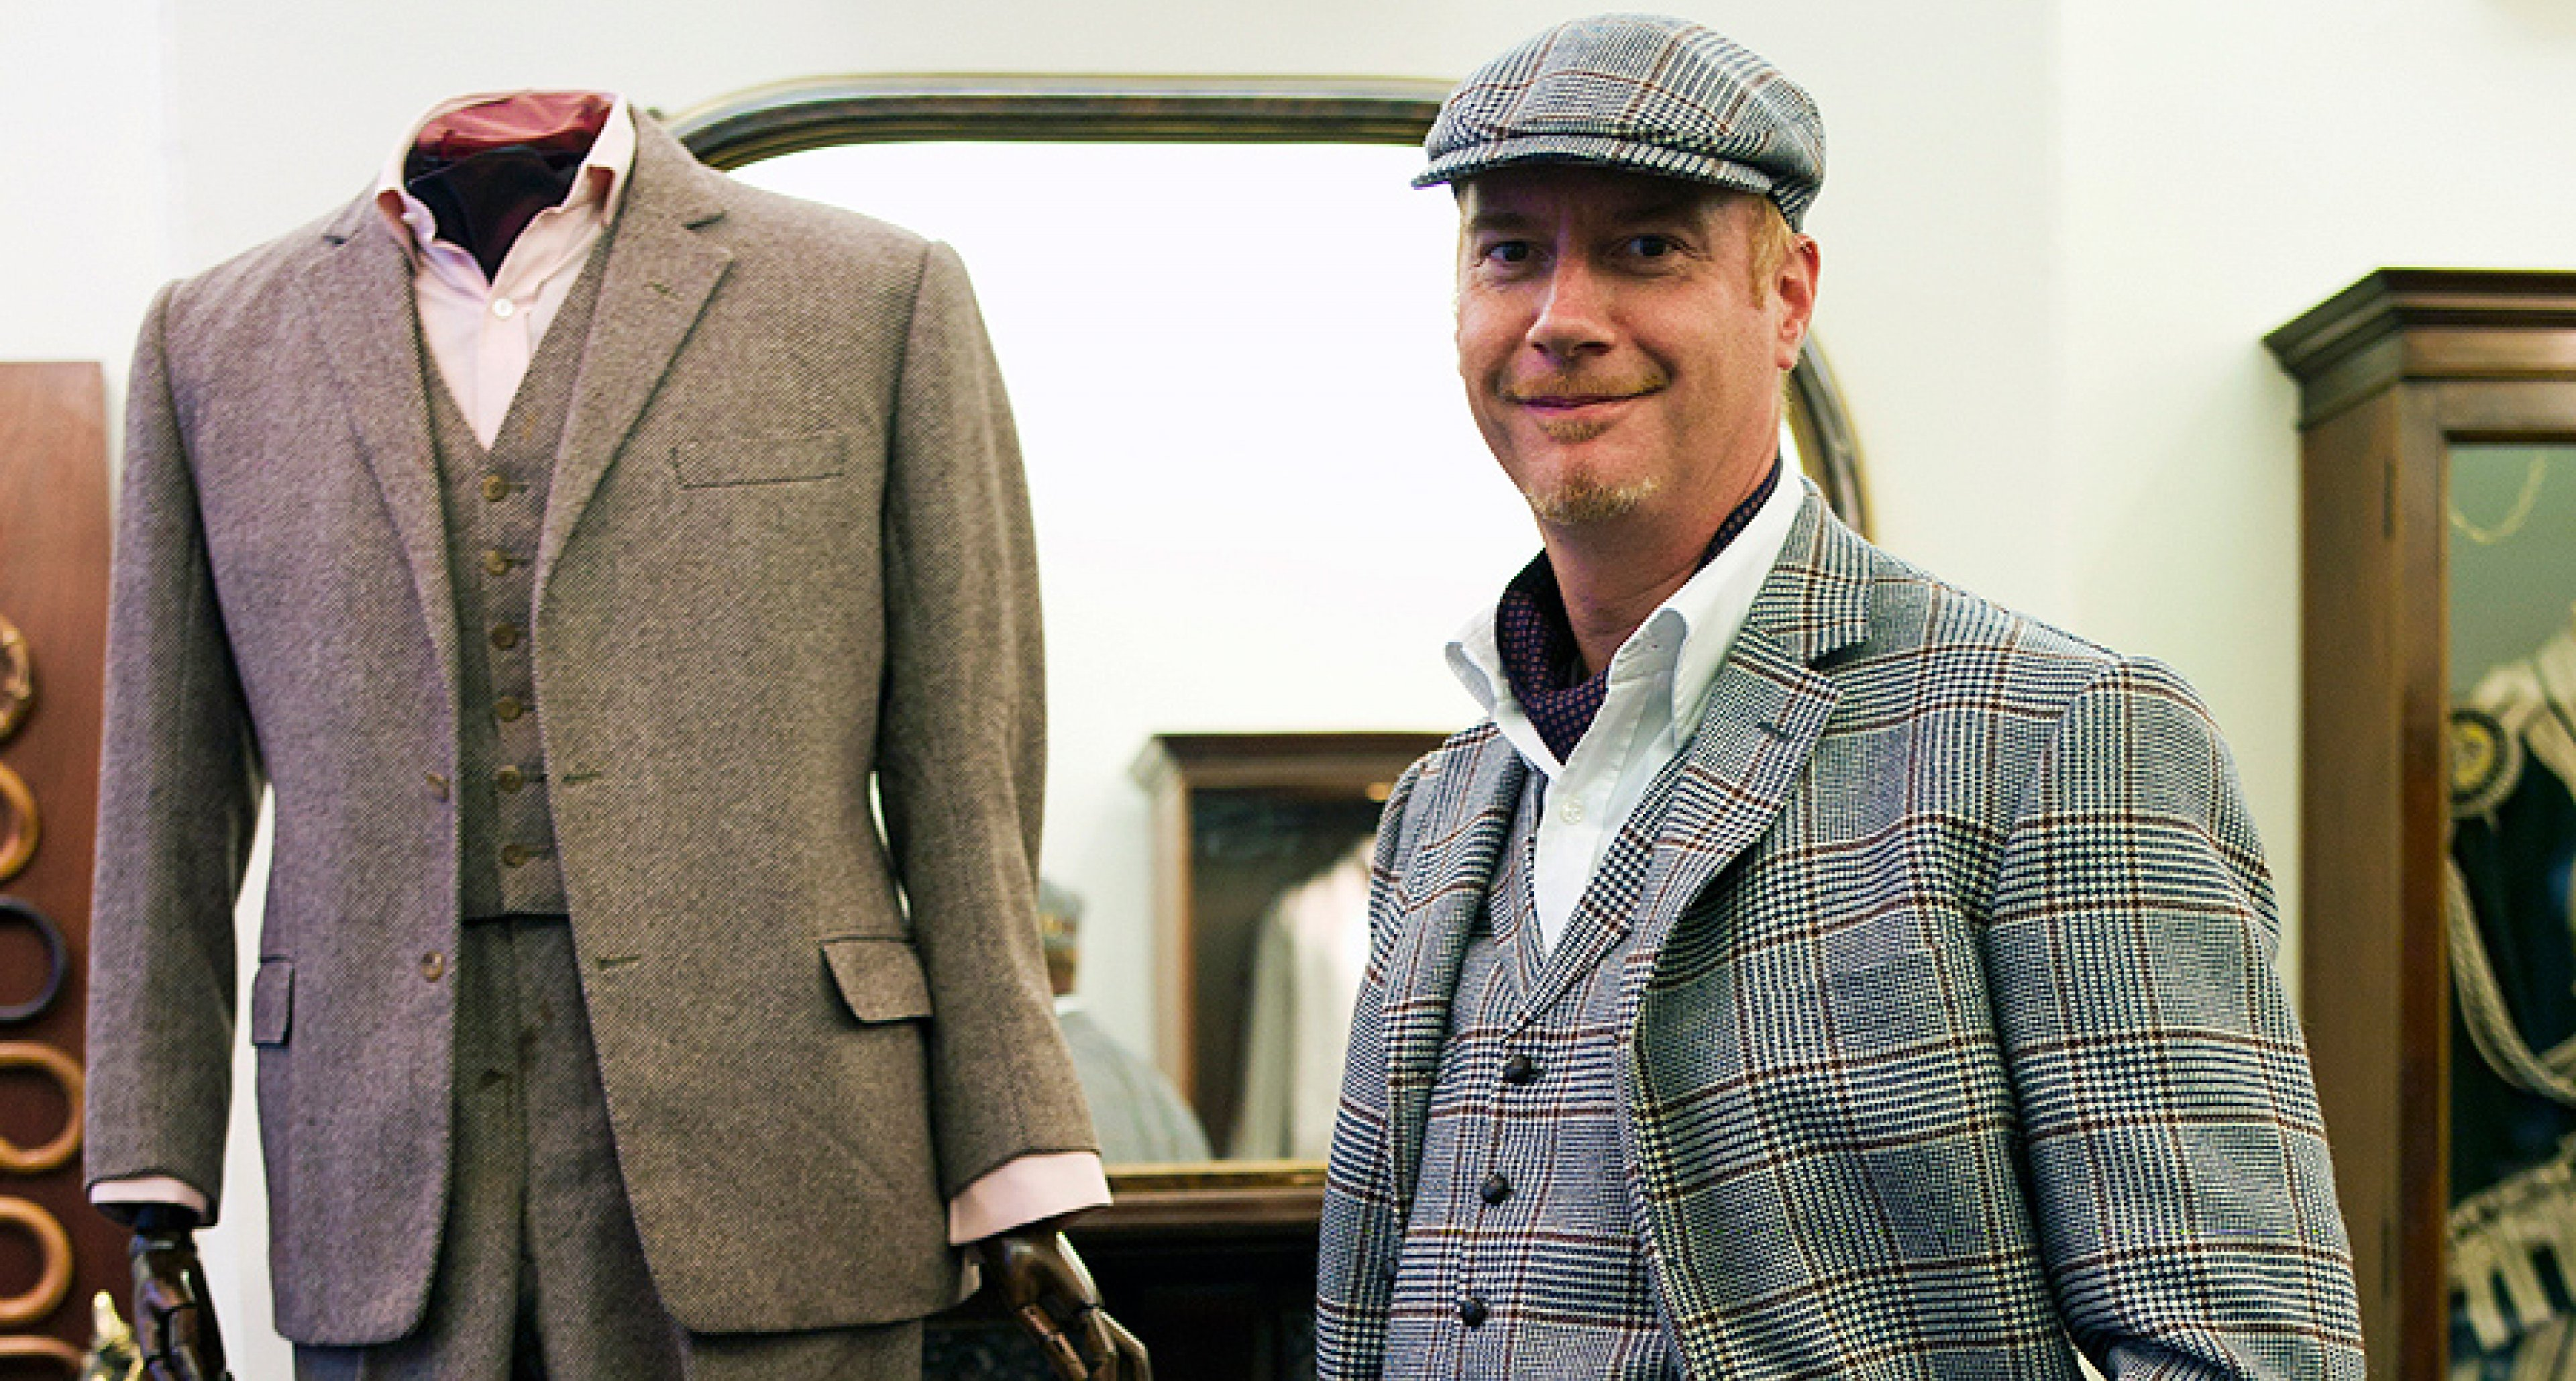 The Bespoke Driving Suit from Henry Poole